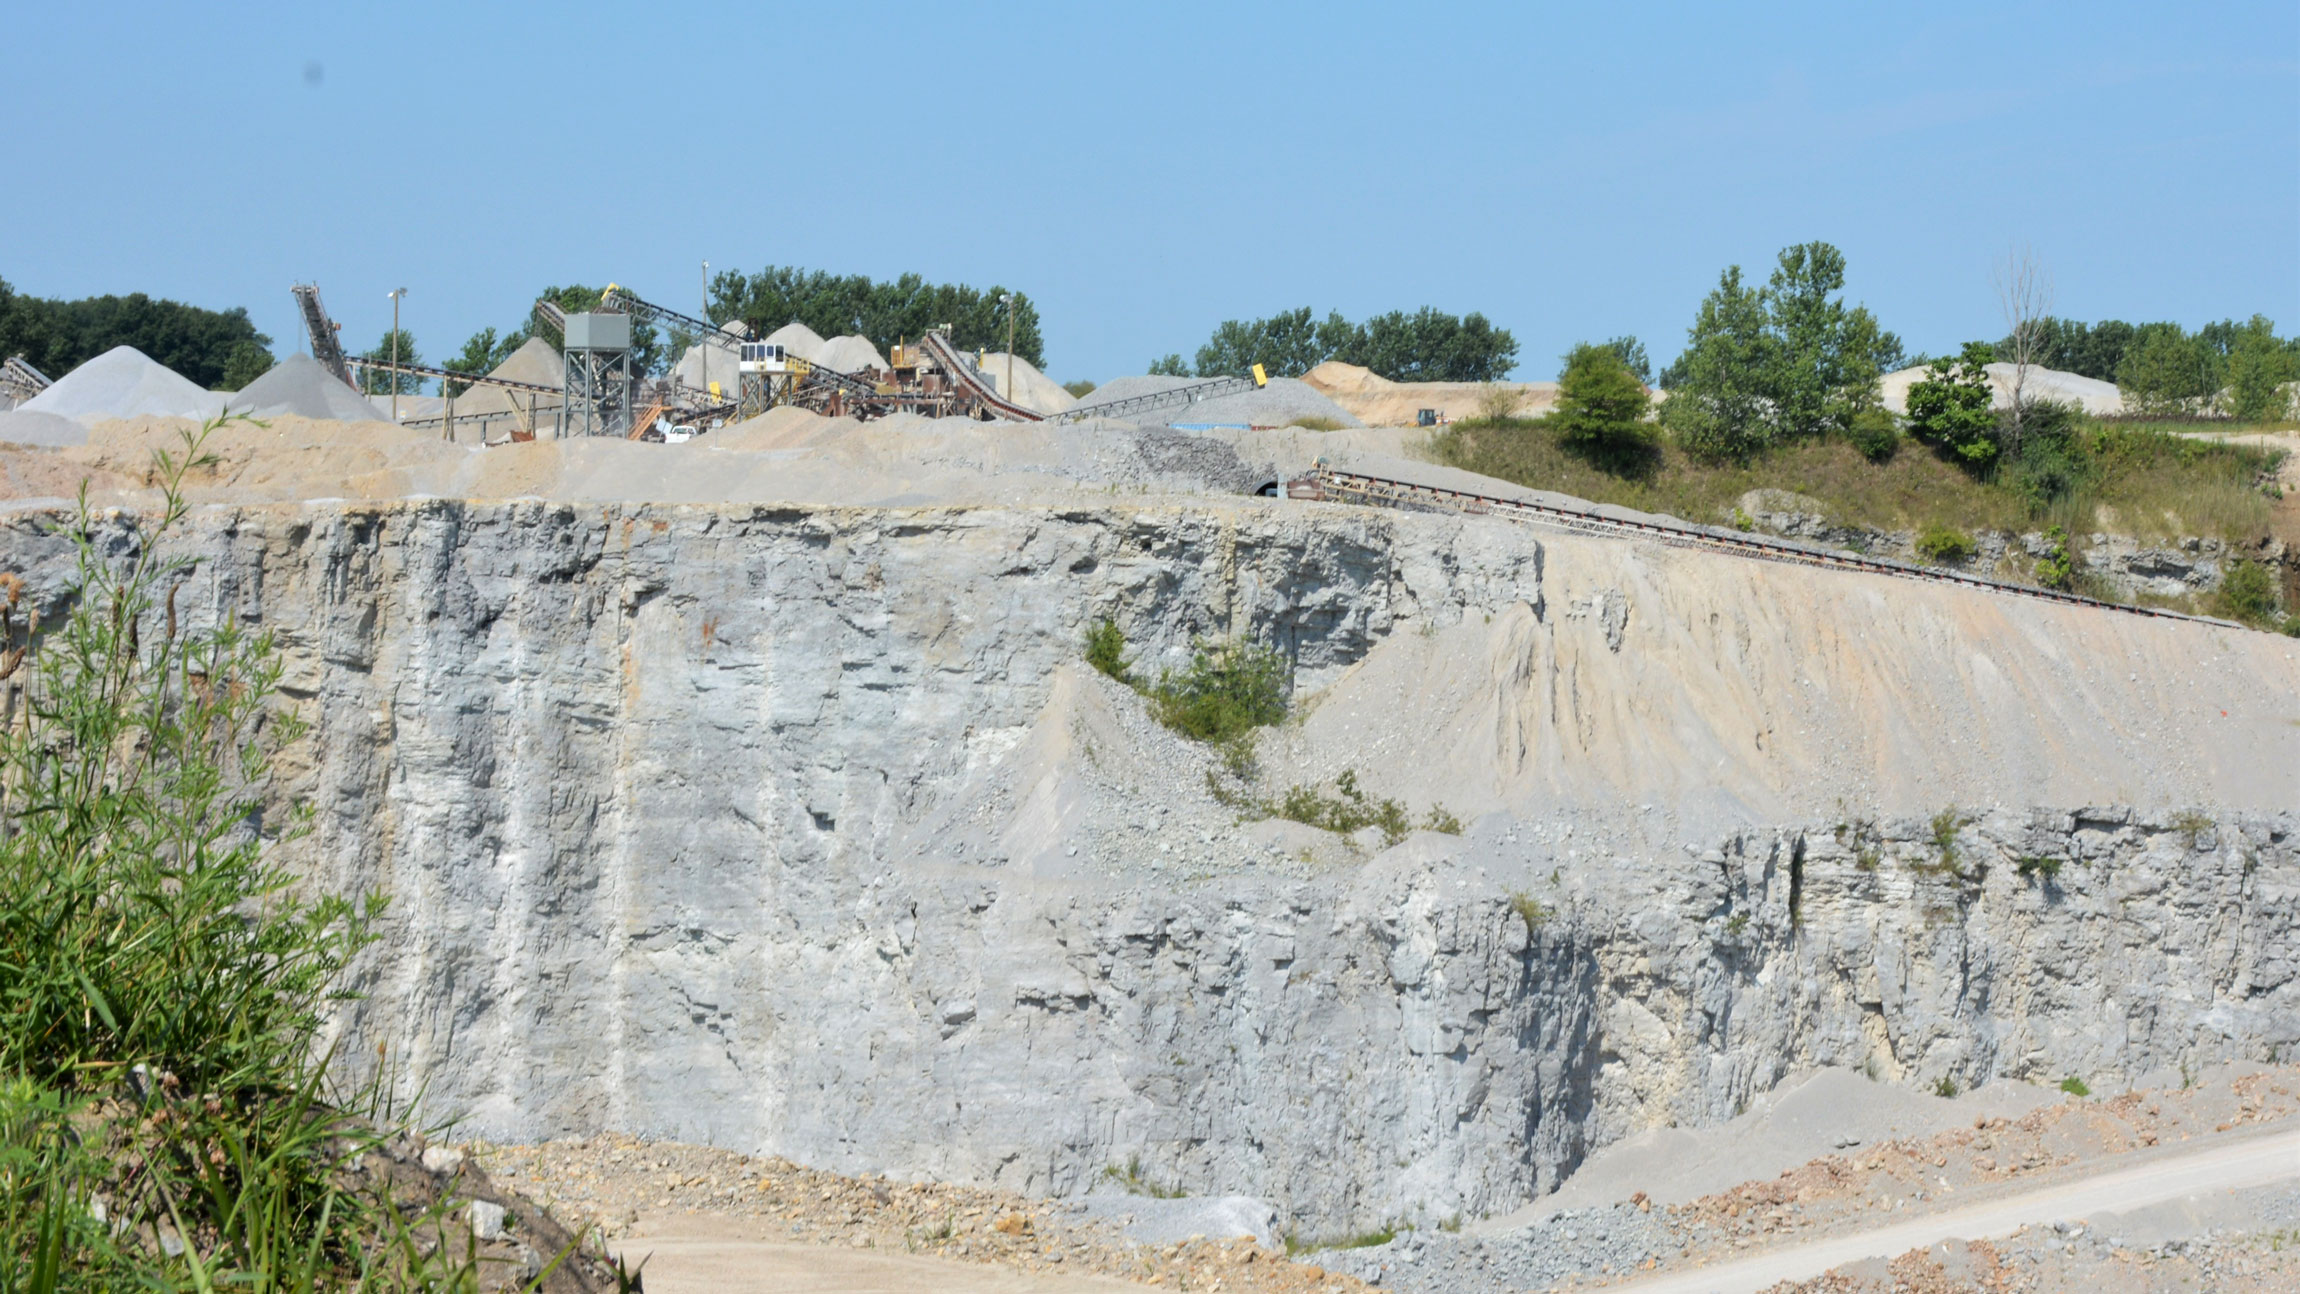 Photo from the Monon Quarry